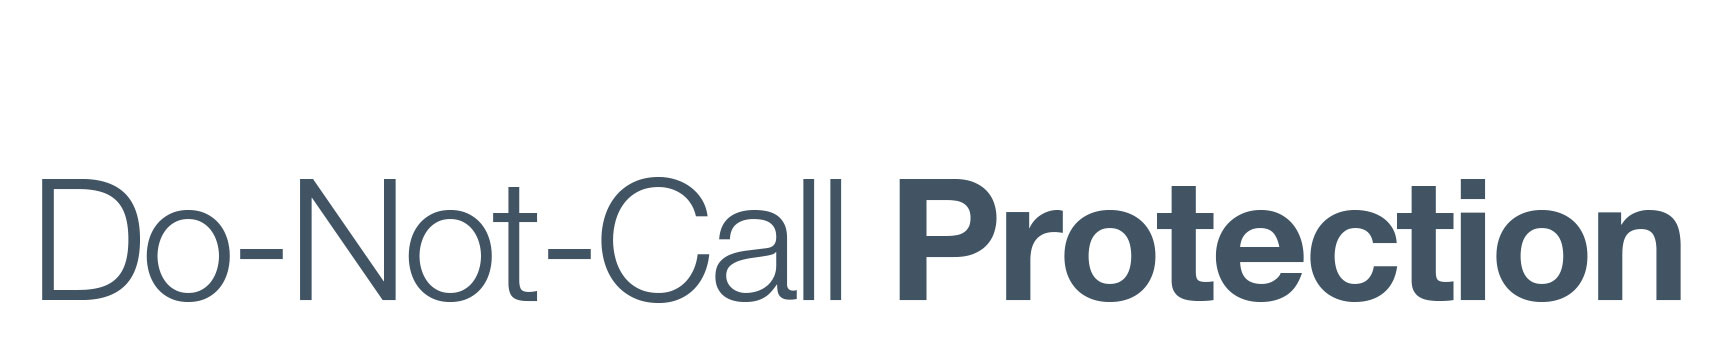 Do-Not-Call Protection